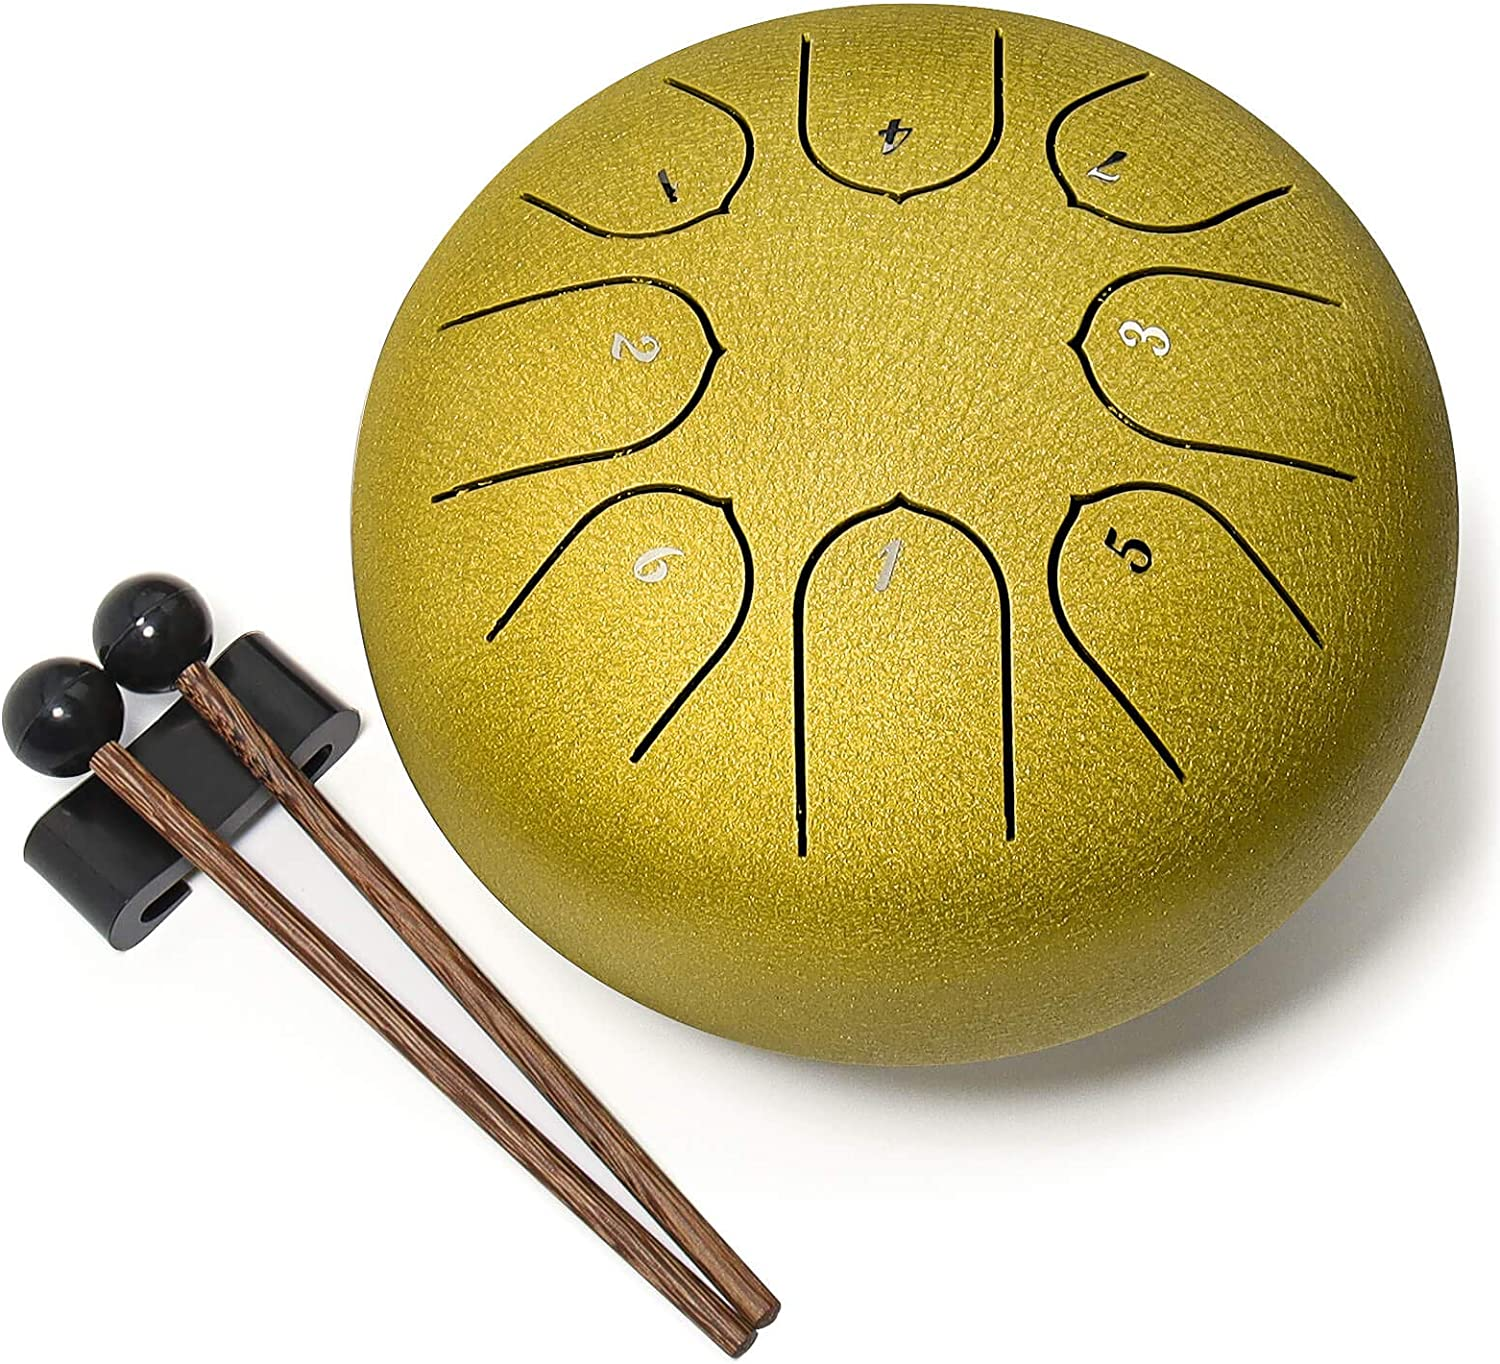 Steel Tongue Drum Ironkoi OFFicial Spasm price mail order 8 Notes 6 Tank inch Percuss Key C